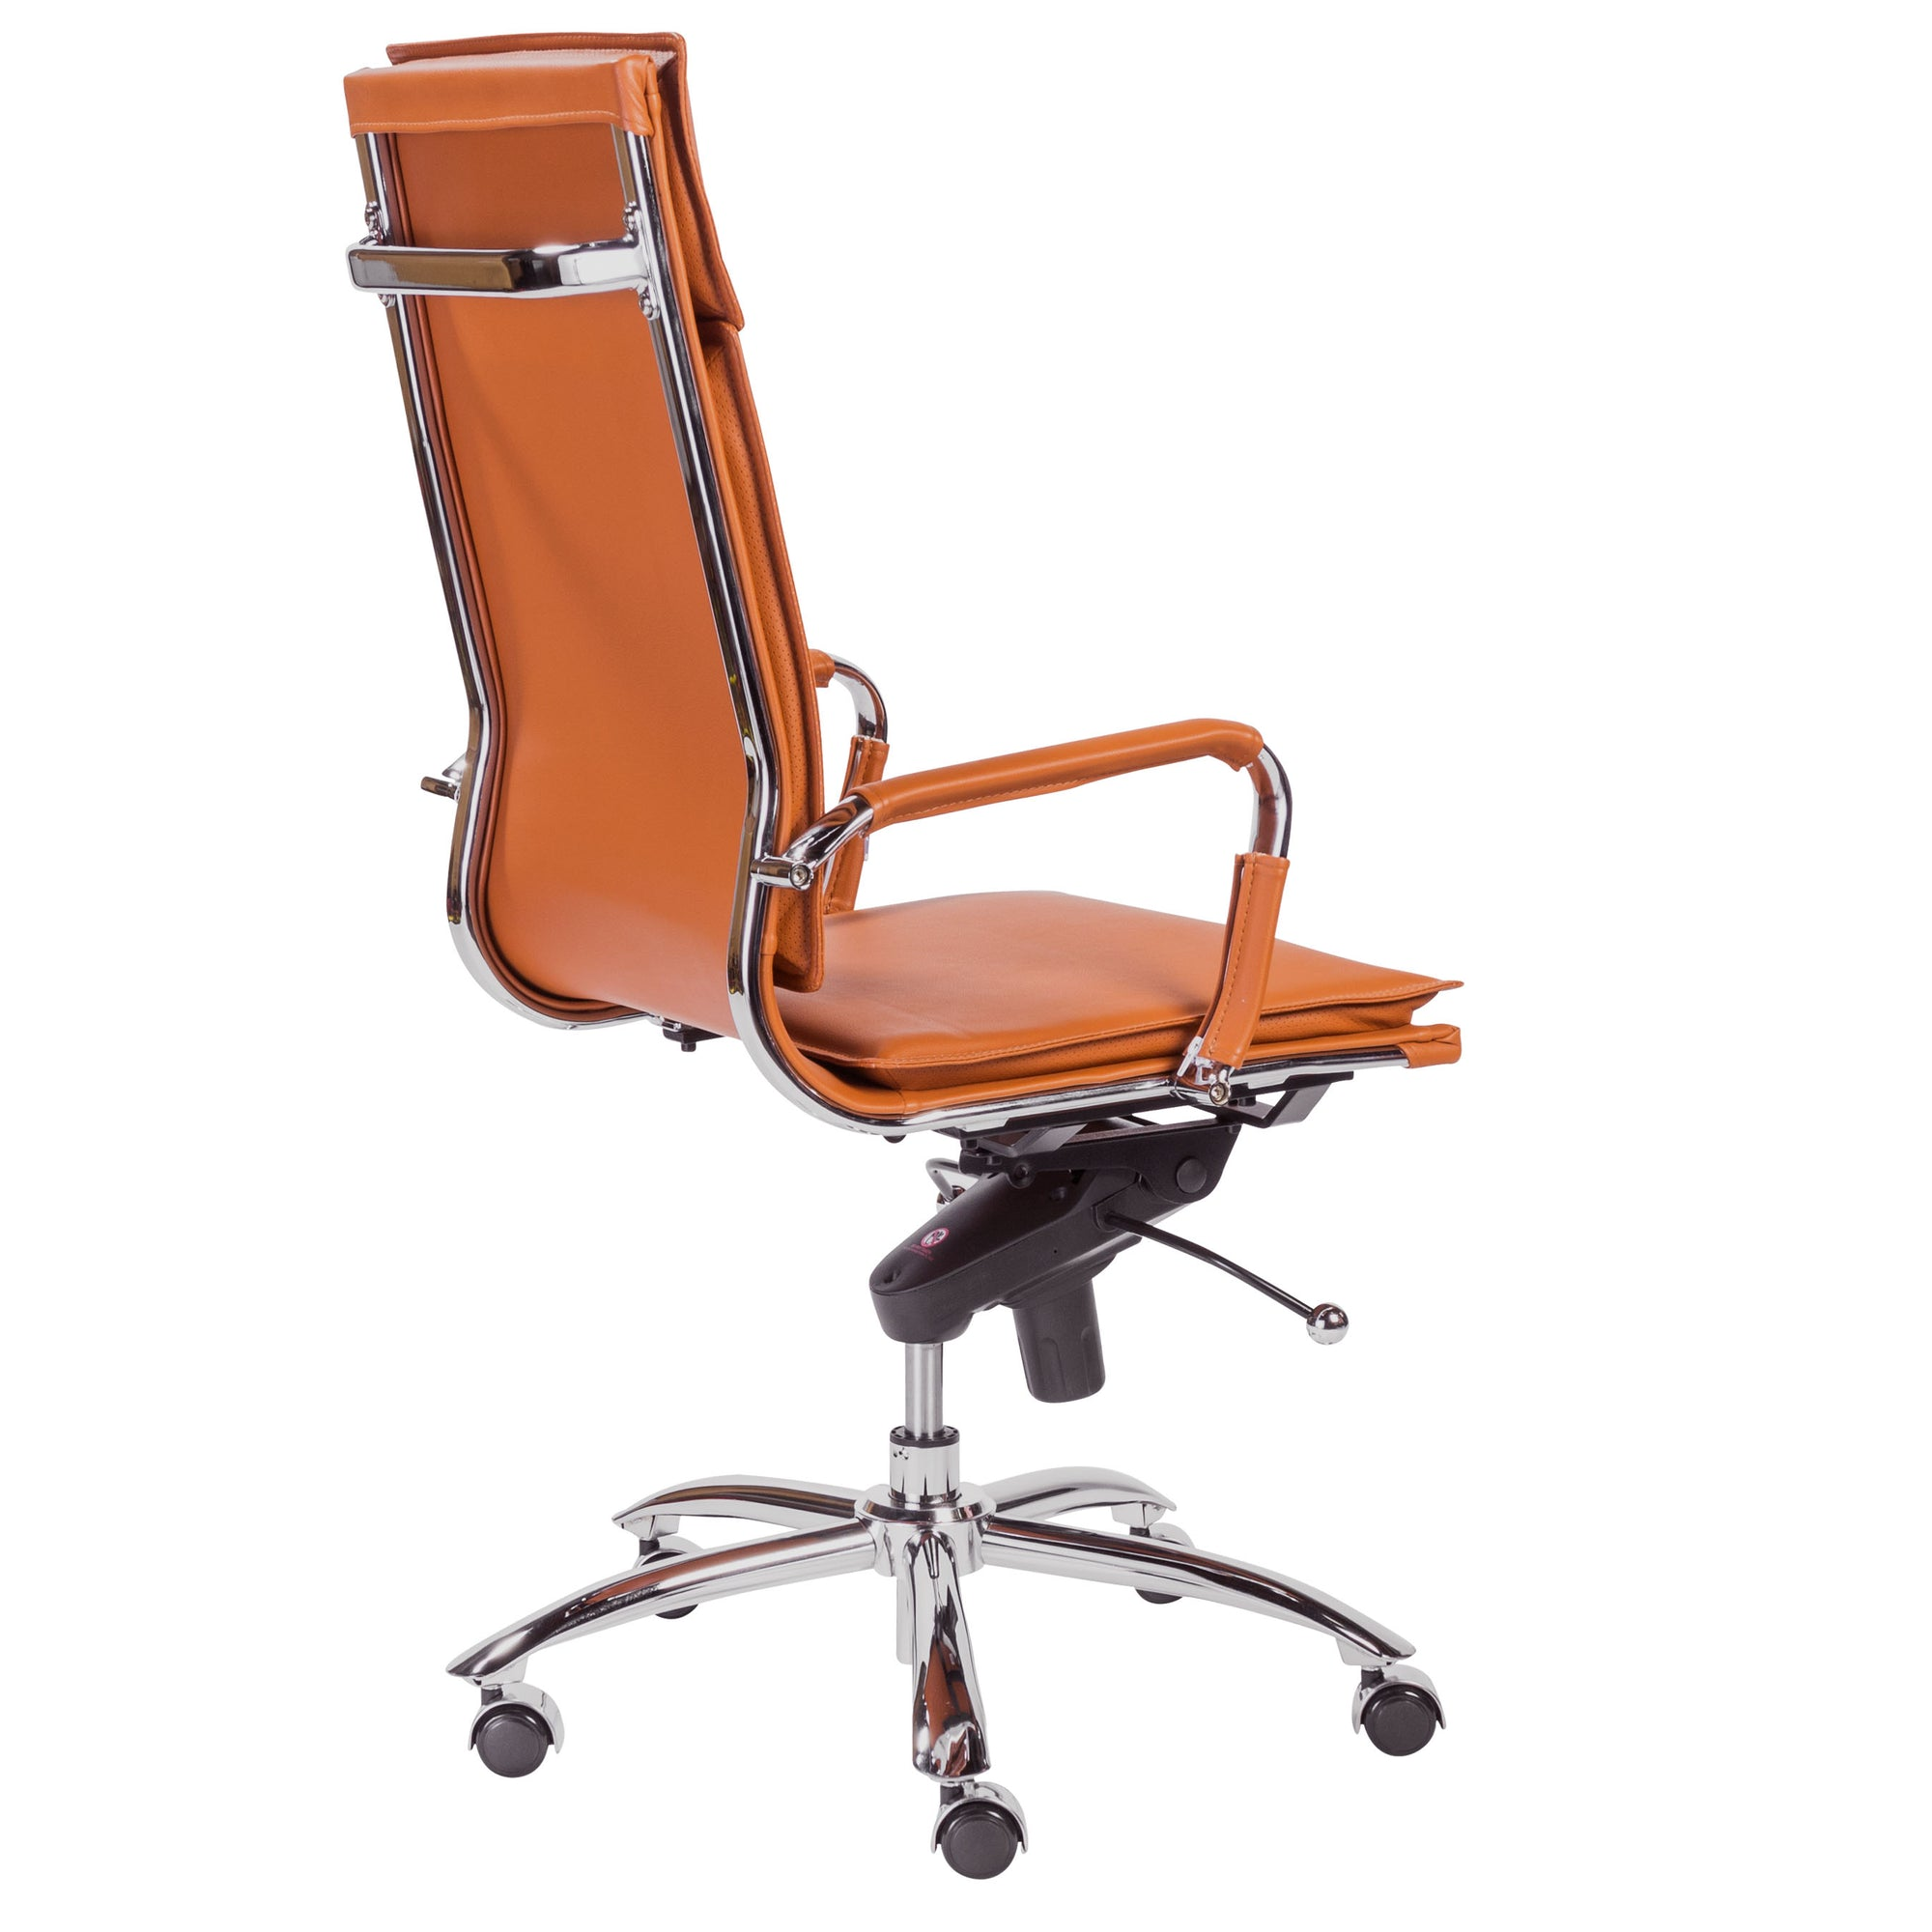 Gunar High Back Leather & Chrome Modern Office Chair in Cognac